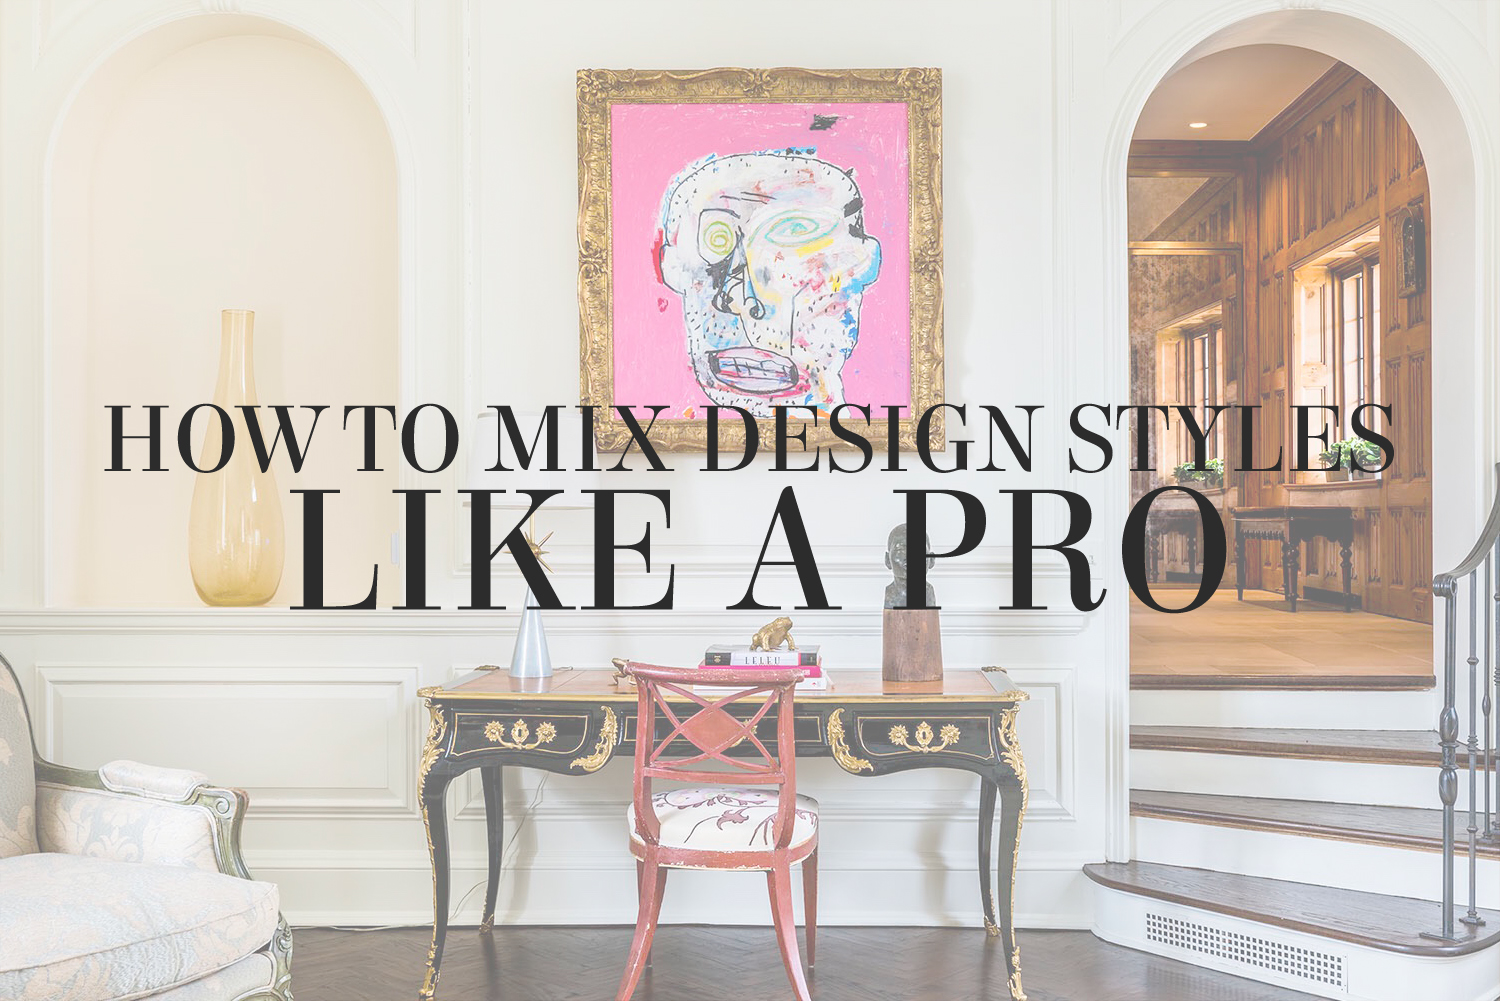 How to mix design styles like a pro - eclectic interior design tips from Lesley Myrick